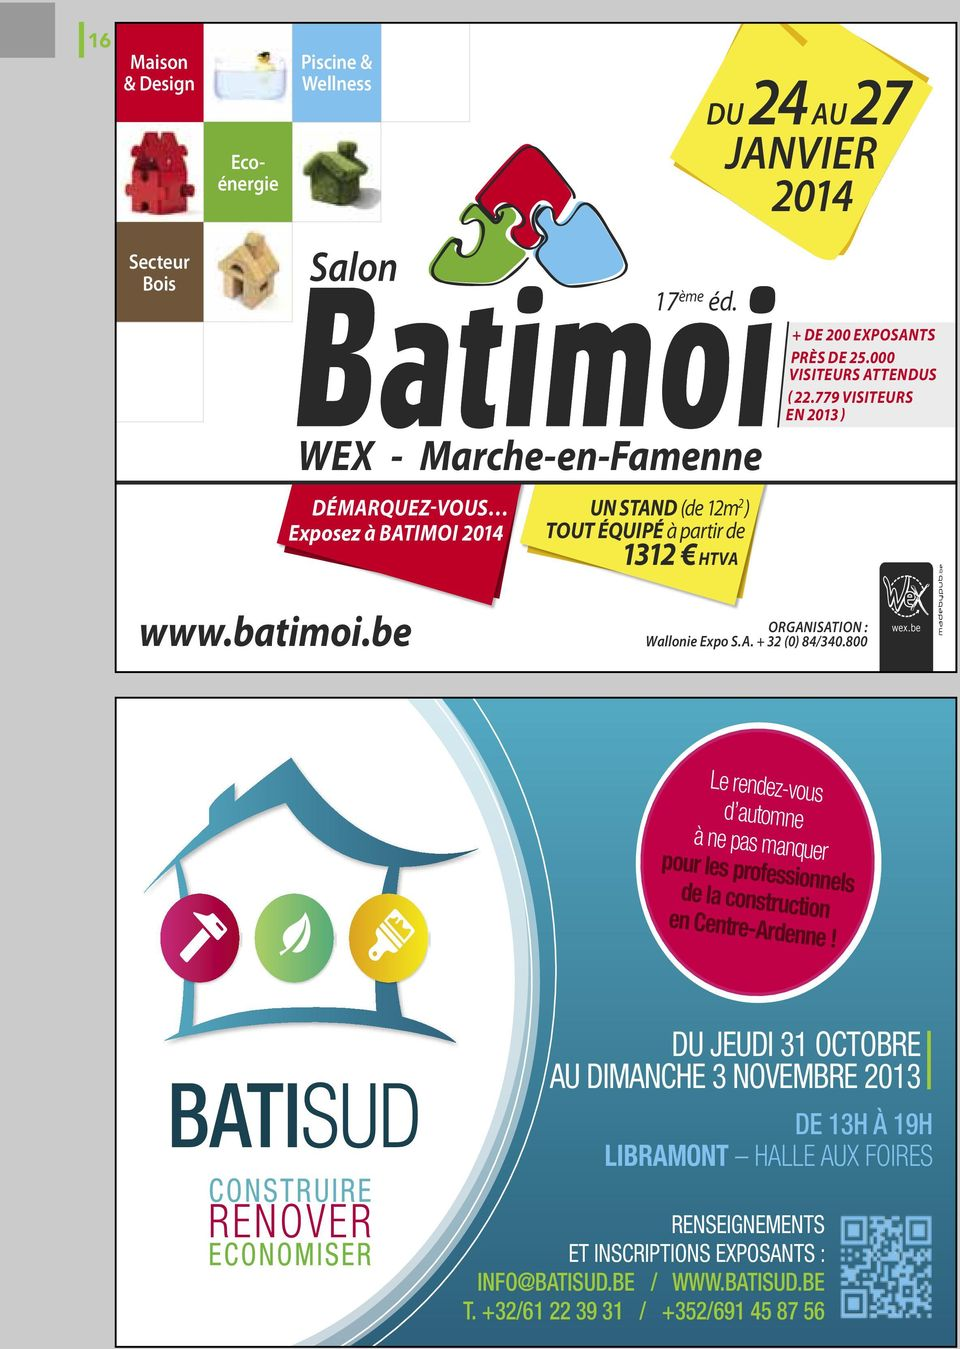 batimoi.be ORganisatiOn : Wallonie expo s.a. + 32 (0) 84/340.800 wex.